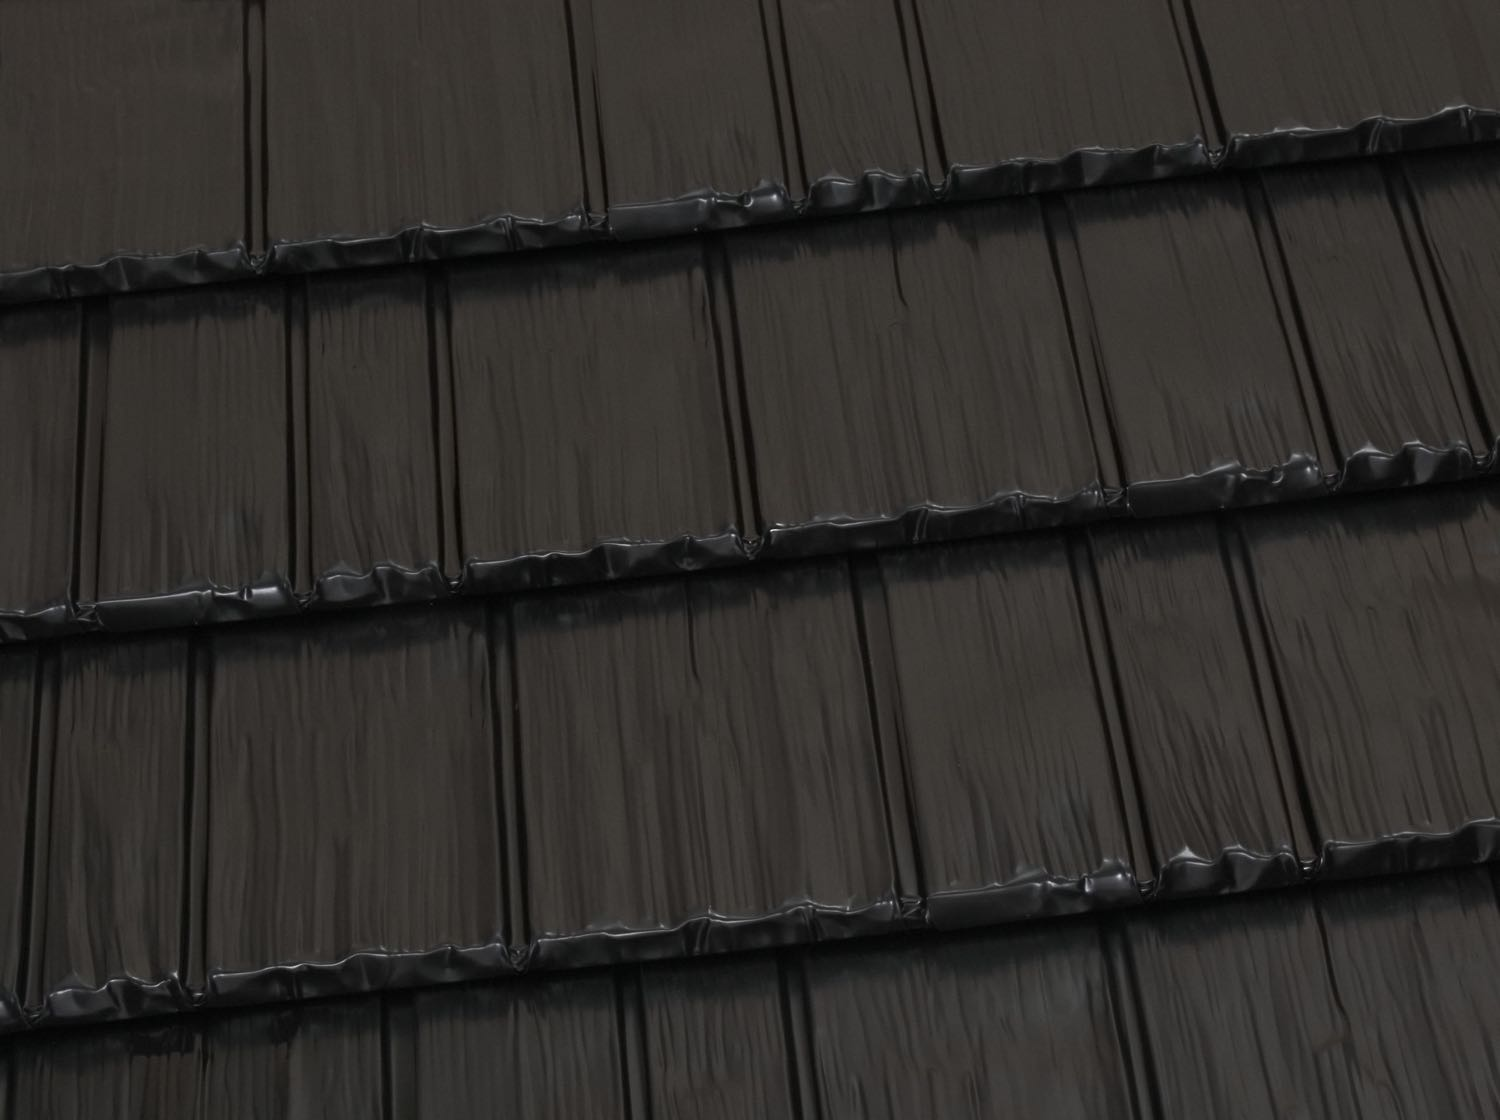 Rustic shingle classic metal roofing systems - Black metal roof pictures ...